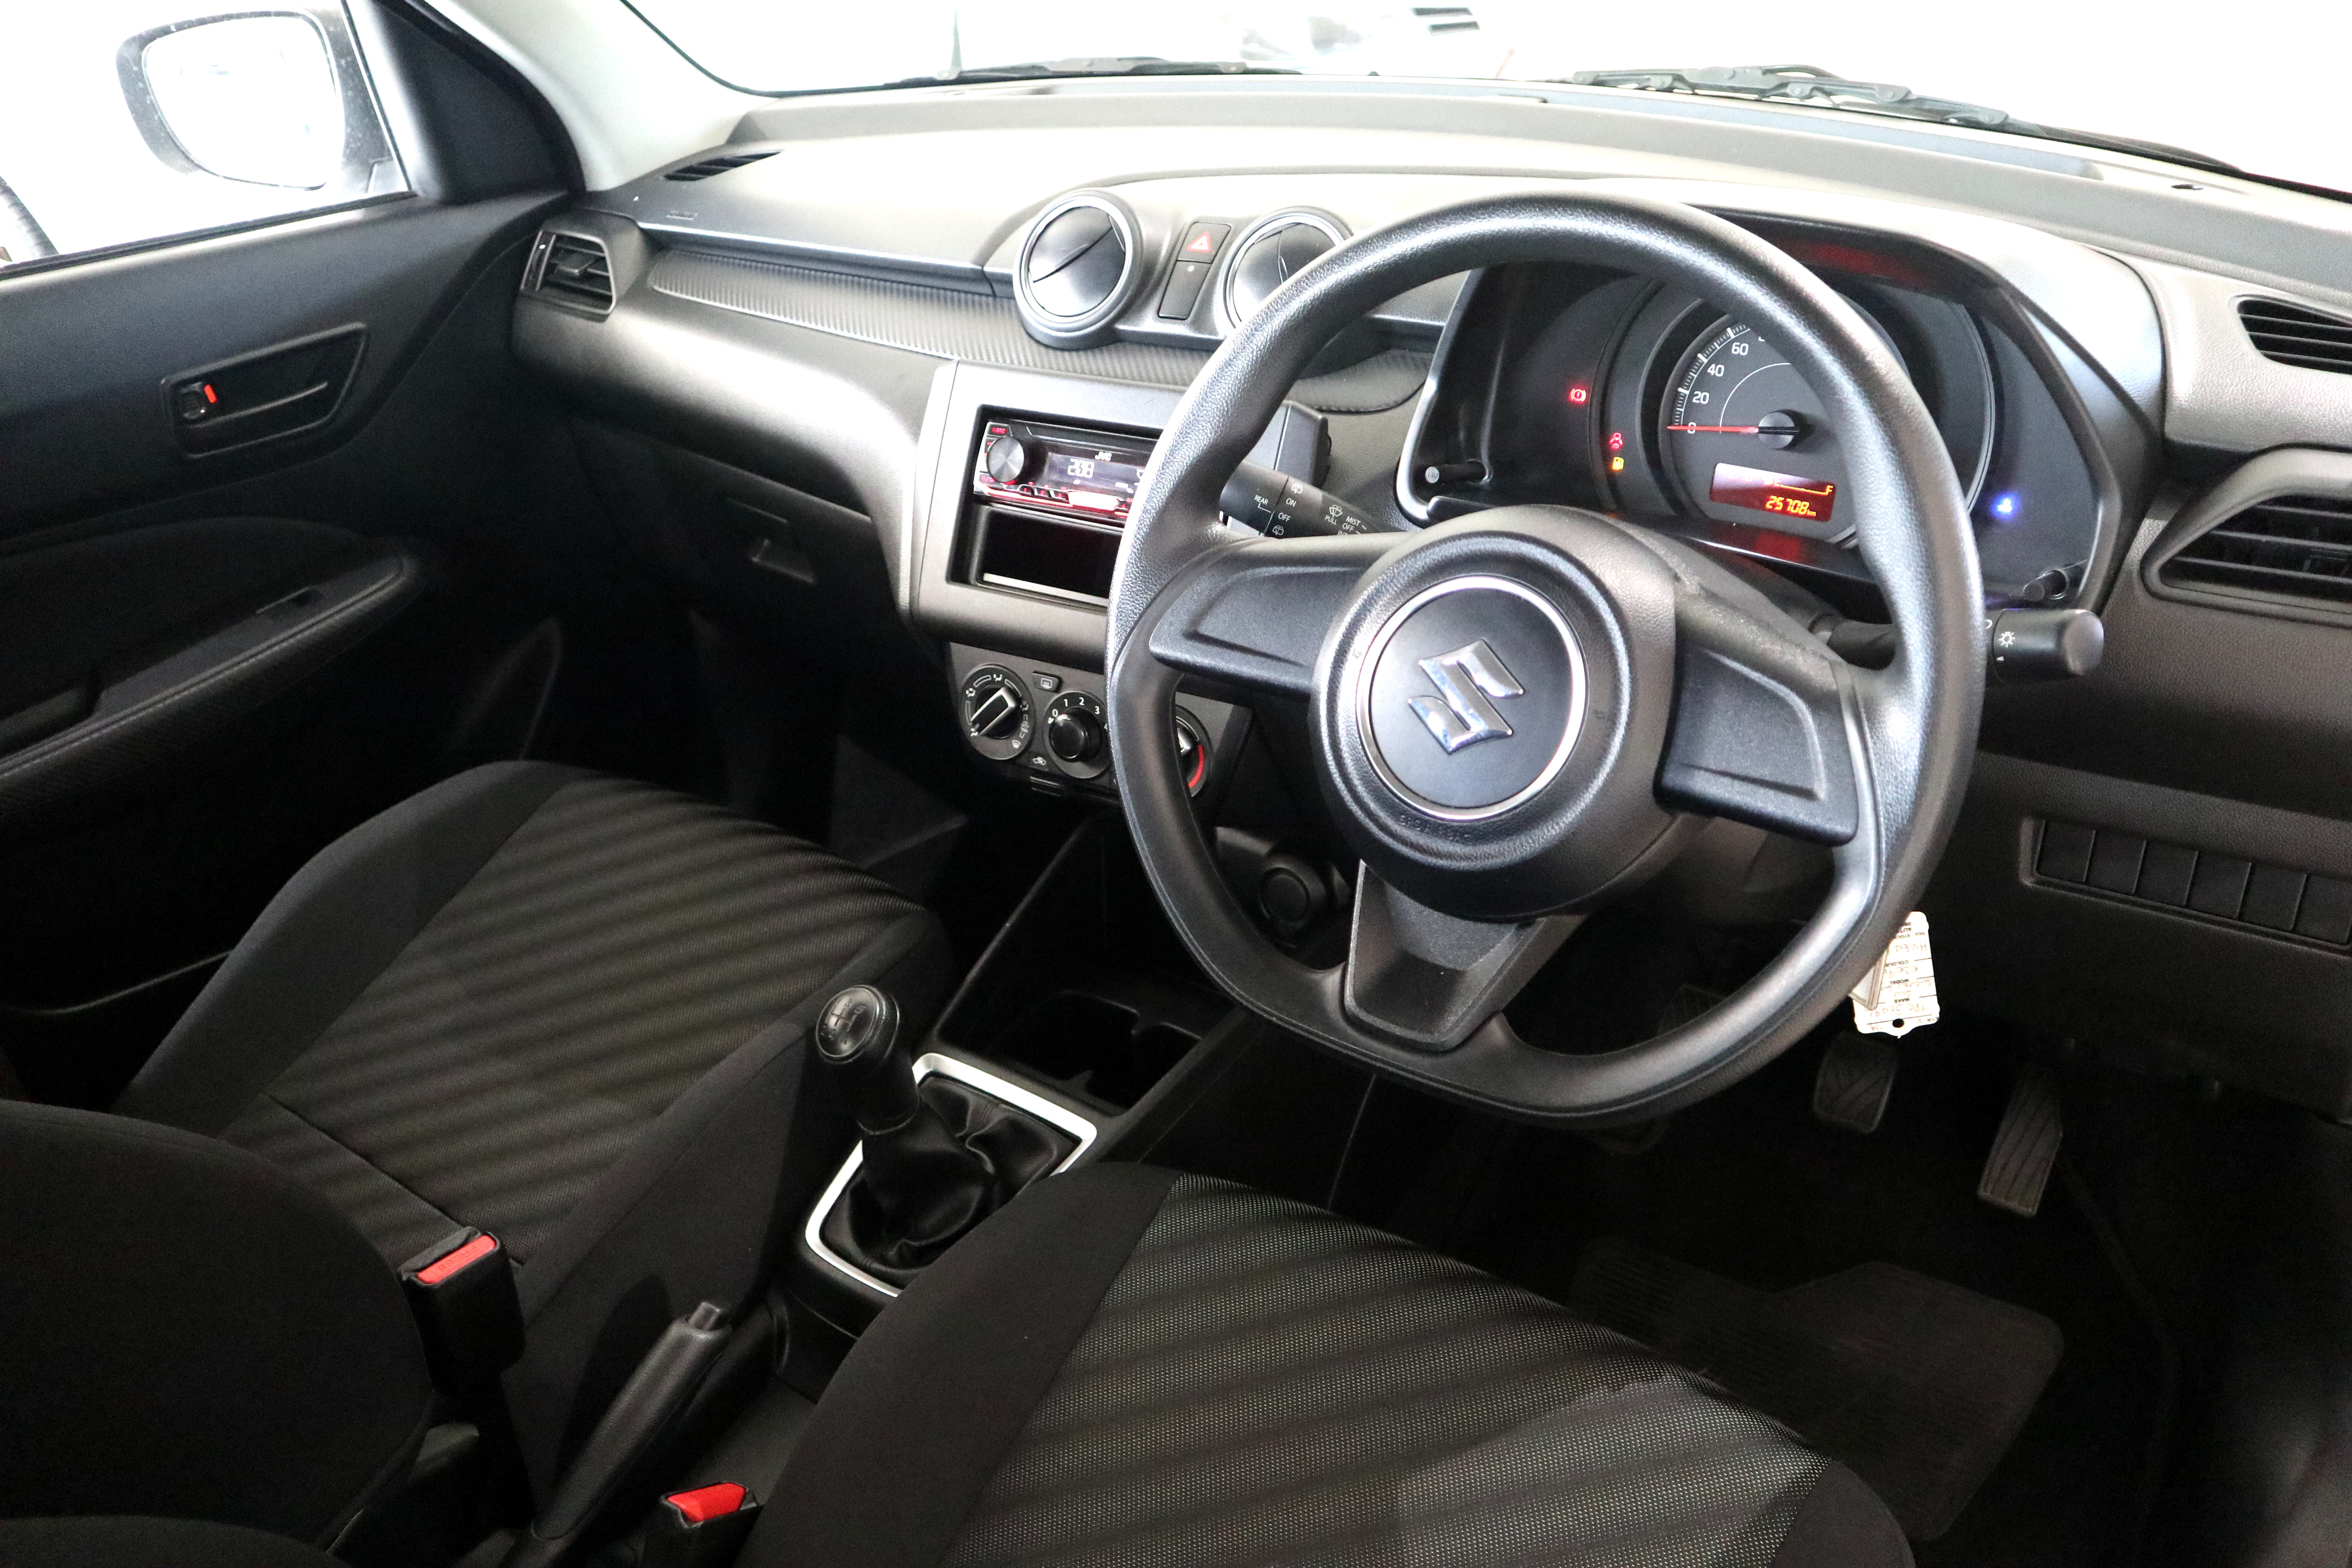 SUZUKI SWIFT 1.2 GA - Interior